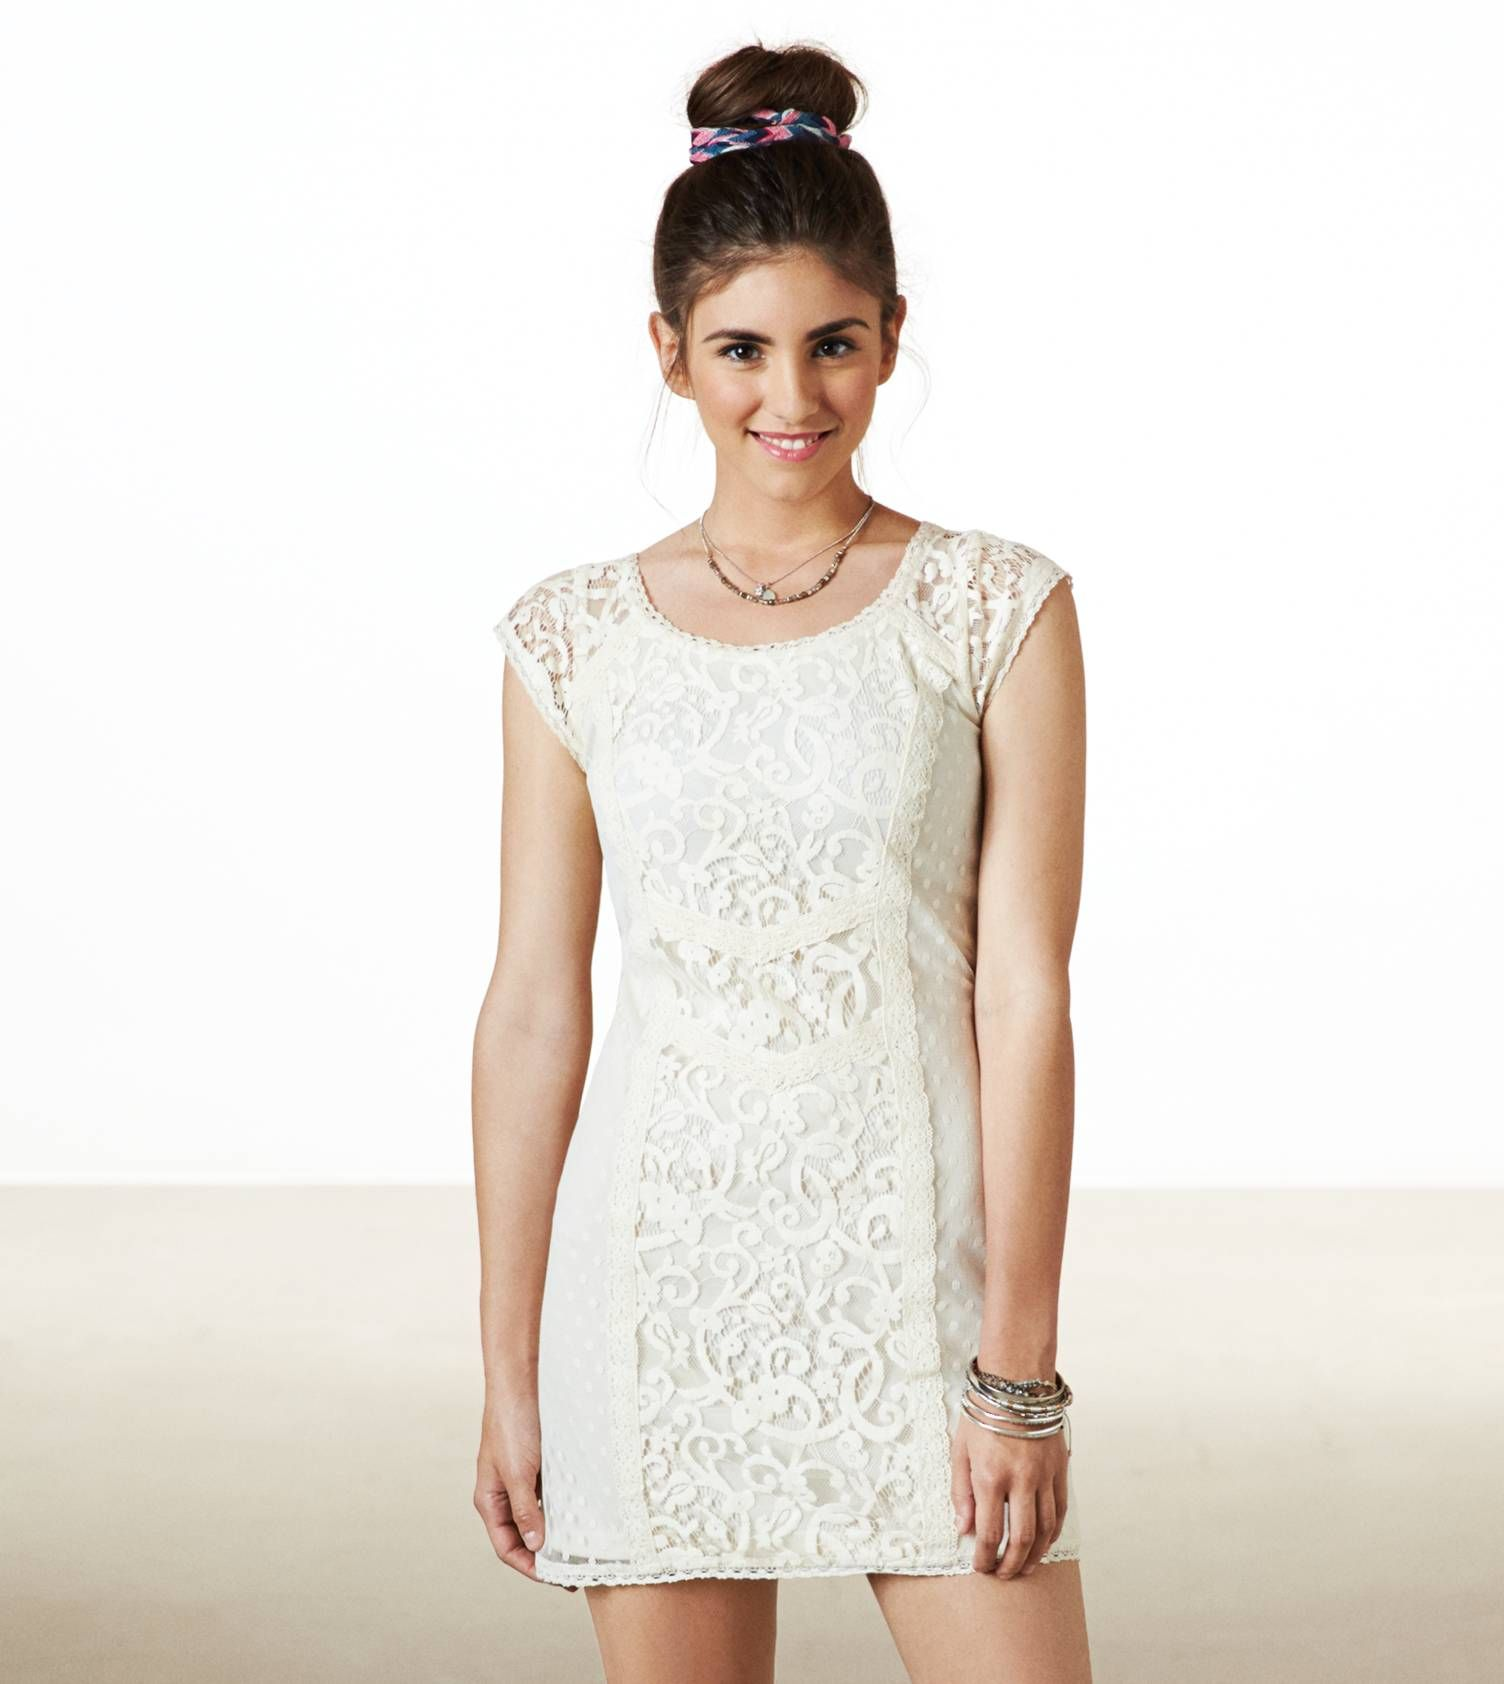 Lace Shift Dress From Ae White Lace Shift Dress Lace Shift Dress Shift Dress [ 1684 x 1504 Pixel ]